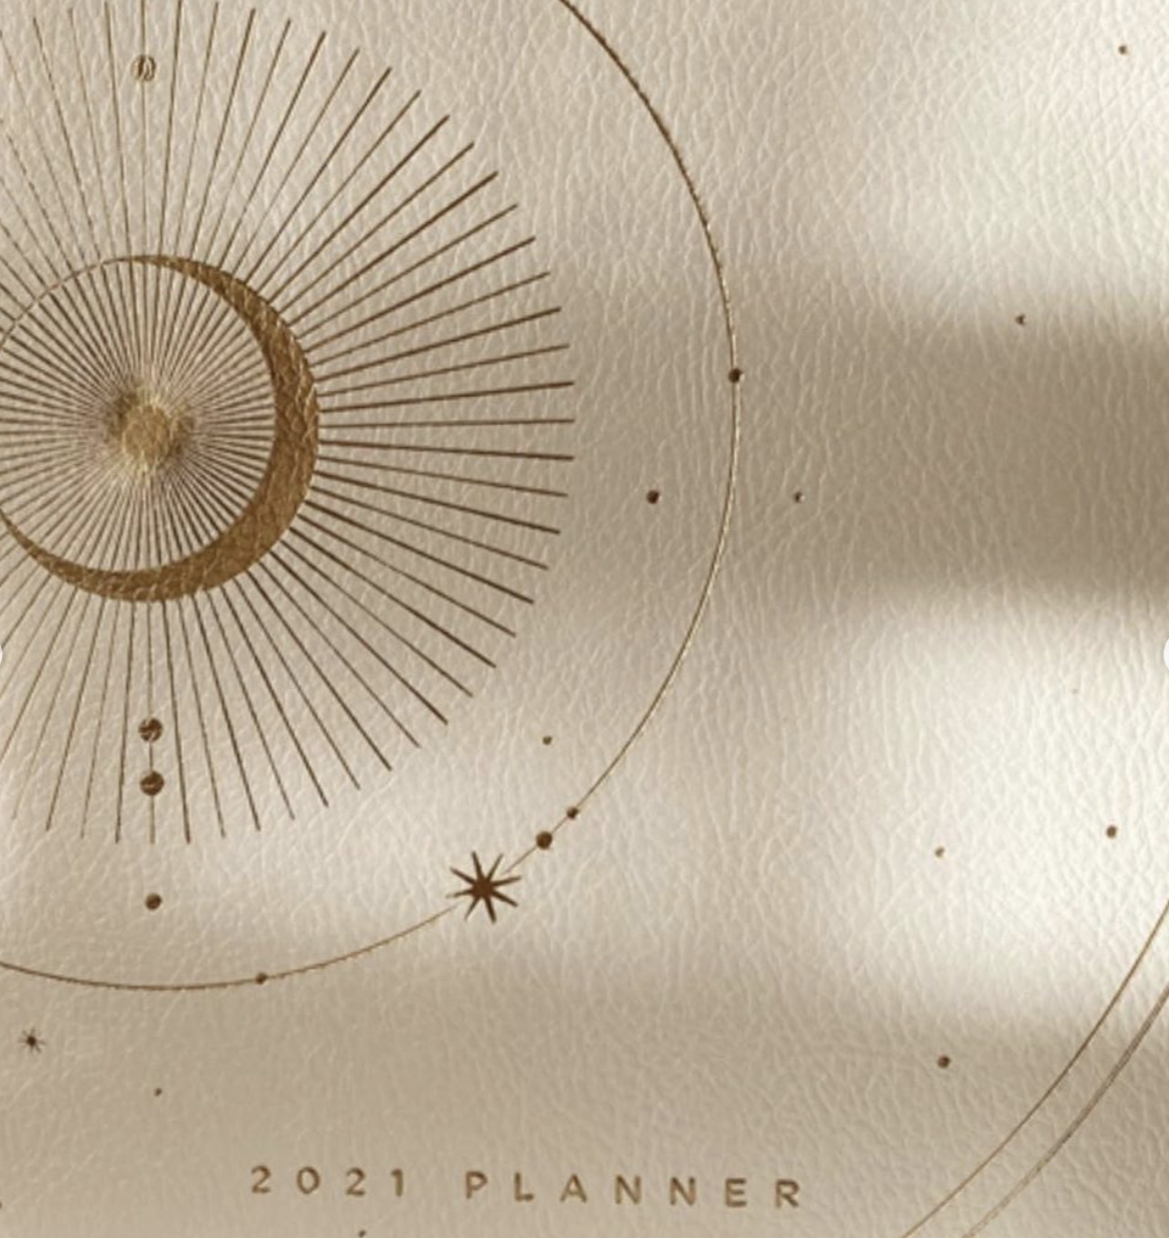 2021 planner designed by lea catbagan for fringe